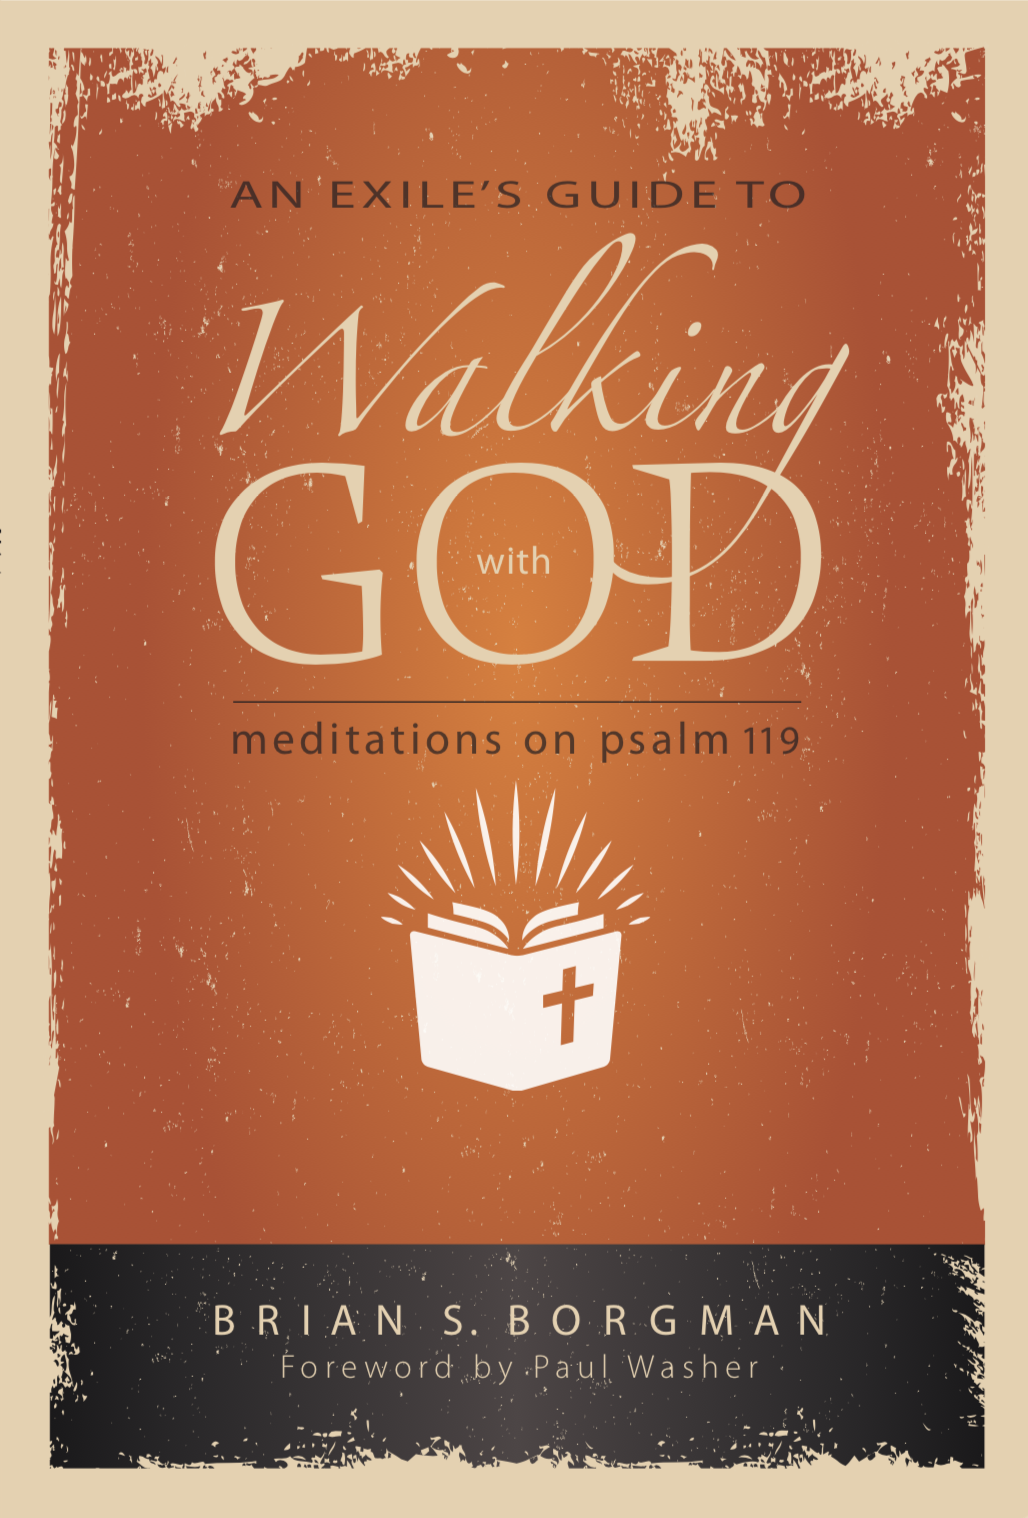 "- ""This is a sweet devotional book on a richly experiential psalm."" —Joel Beeke""In this very practical study of Psalm 119, Brian Borgman shows us the treasure we hav sin god's Word and leaves us thanking God for it."" —Conrad Mbewe""As I read through this work, I had the sense the tI was being counsels form the Word by an expert scribe (Matt. 13:52) who is also a fellow pilgrim in need of grace."" —Paul Washer200 PagesOur Price: 12.00"